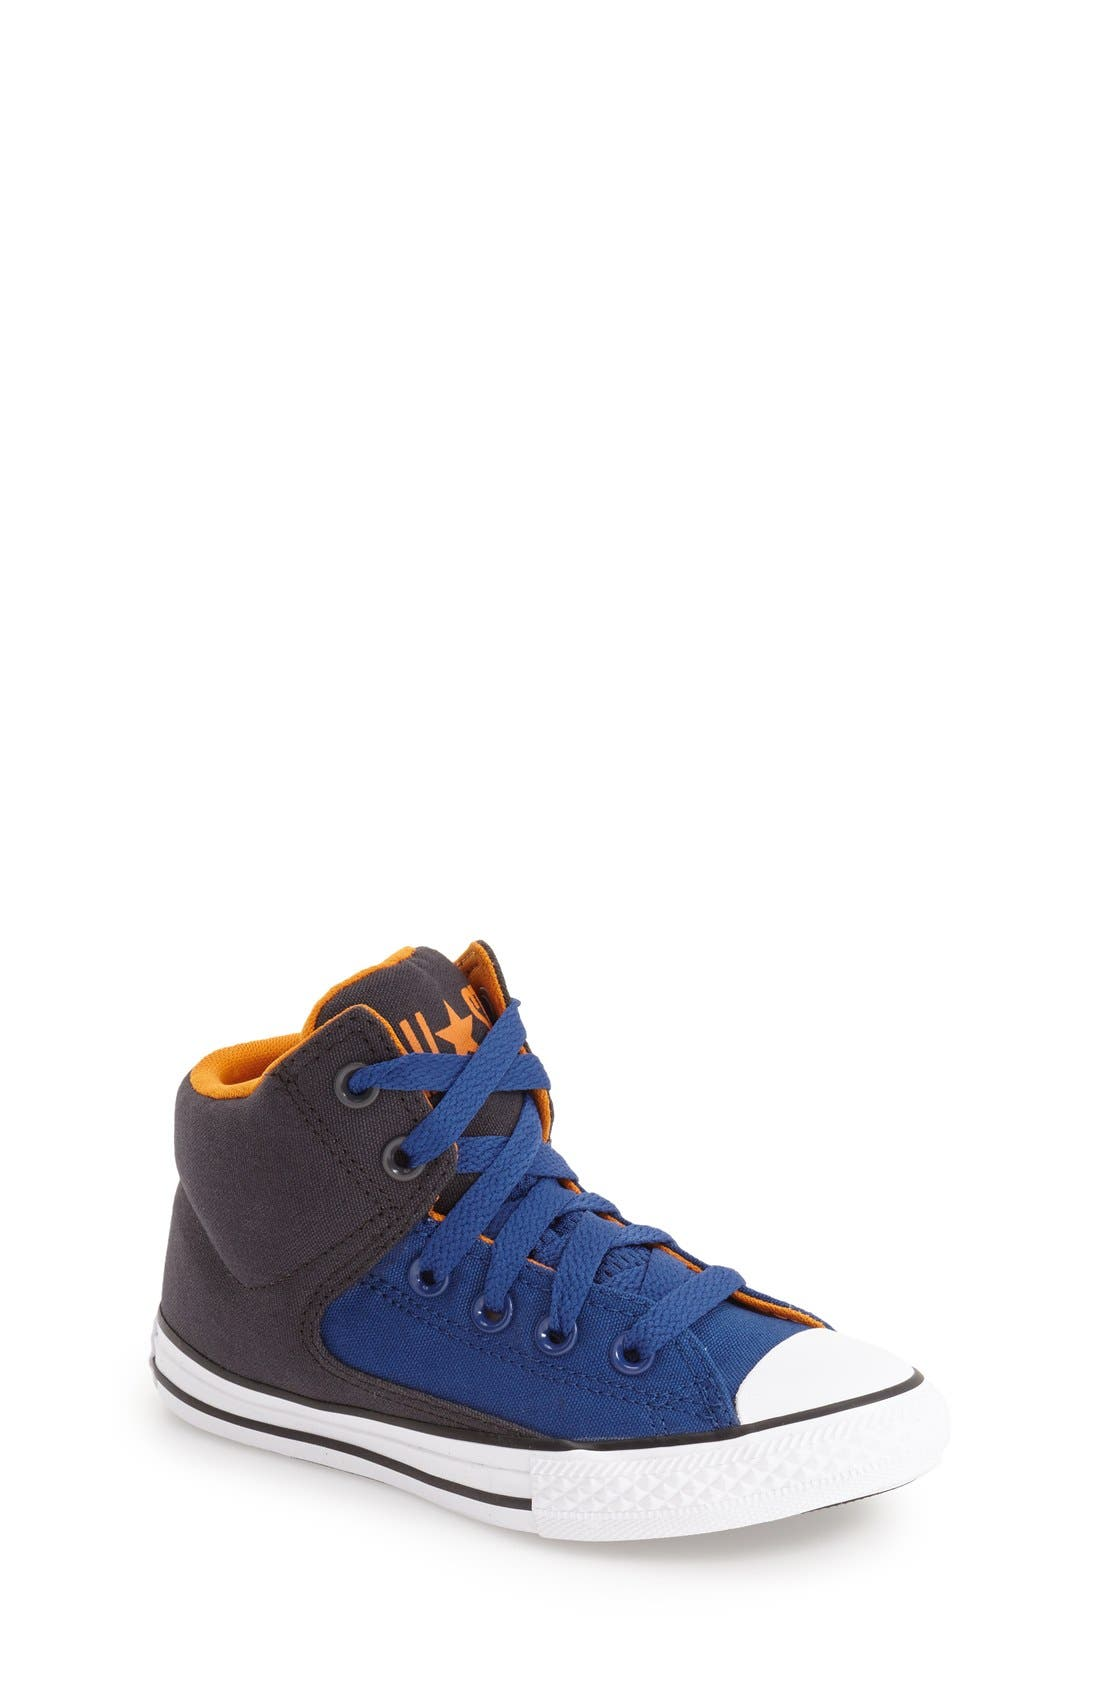 Chuck Taylor<sup>®</sup> All Star<sup>®</sup> 'High Street' Mid Rise Sneaker,                         Main,                         color, Blue